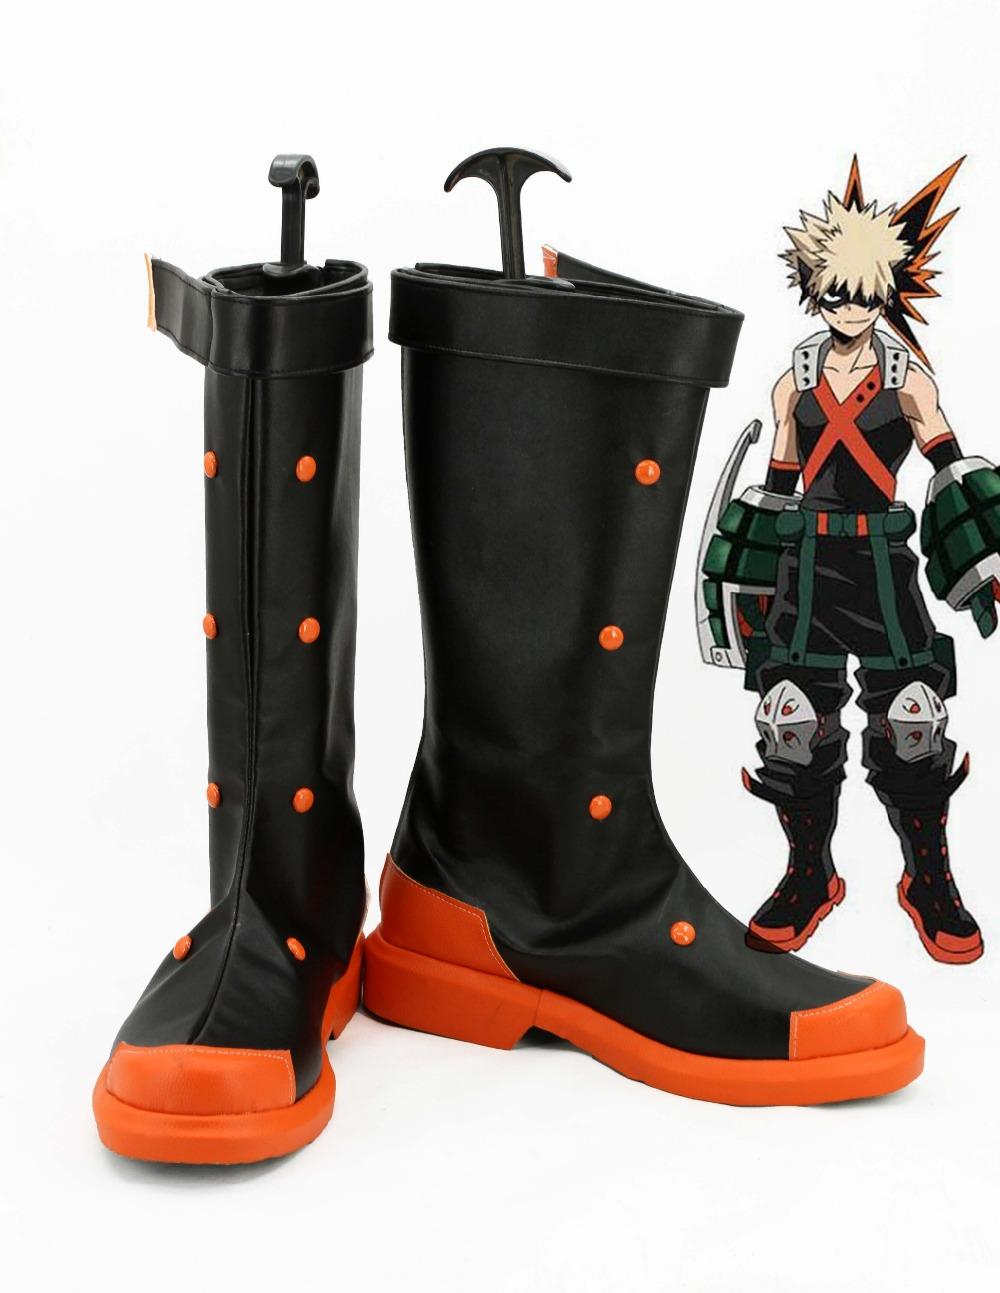 Cheap Shoes Boku no Hero Academia My Hero Academia Bakugou Katsuki Cosplay Boots Shoes For Costume Custom Made